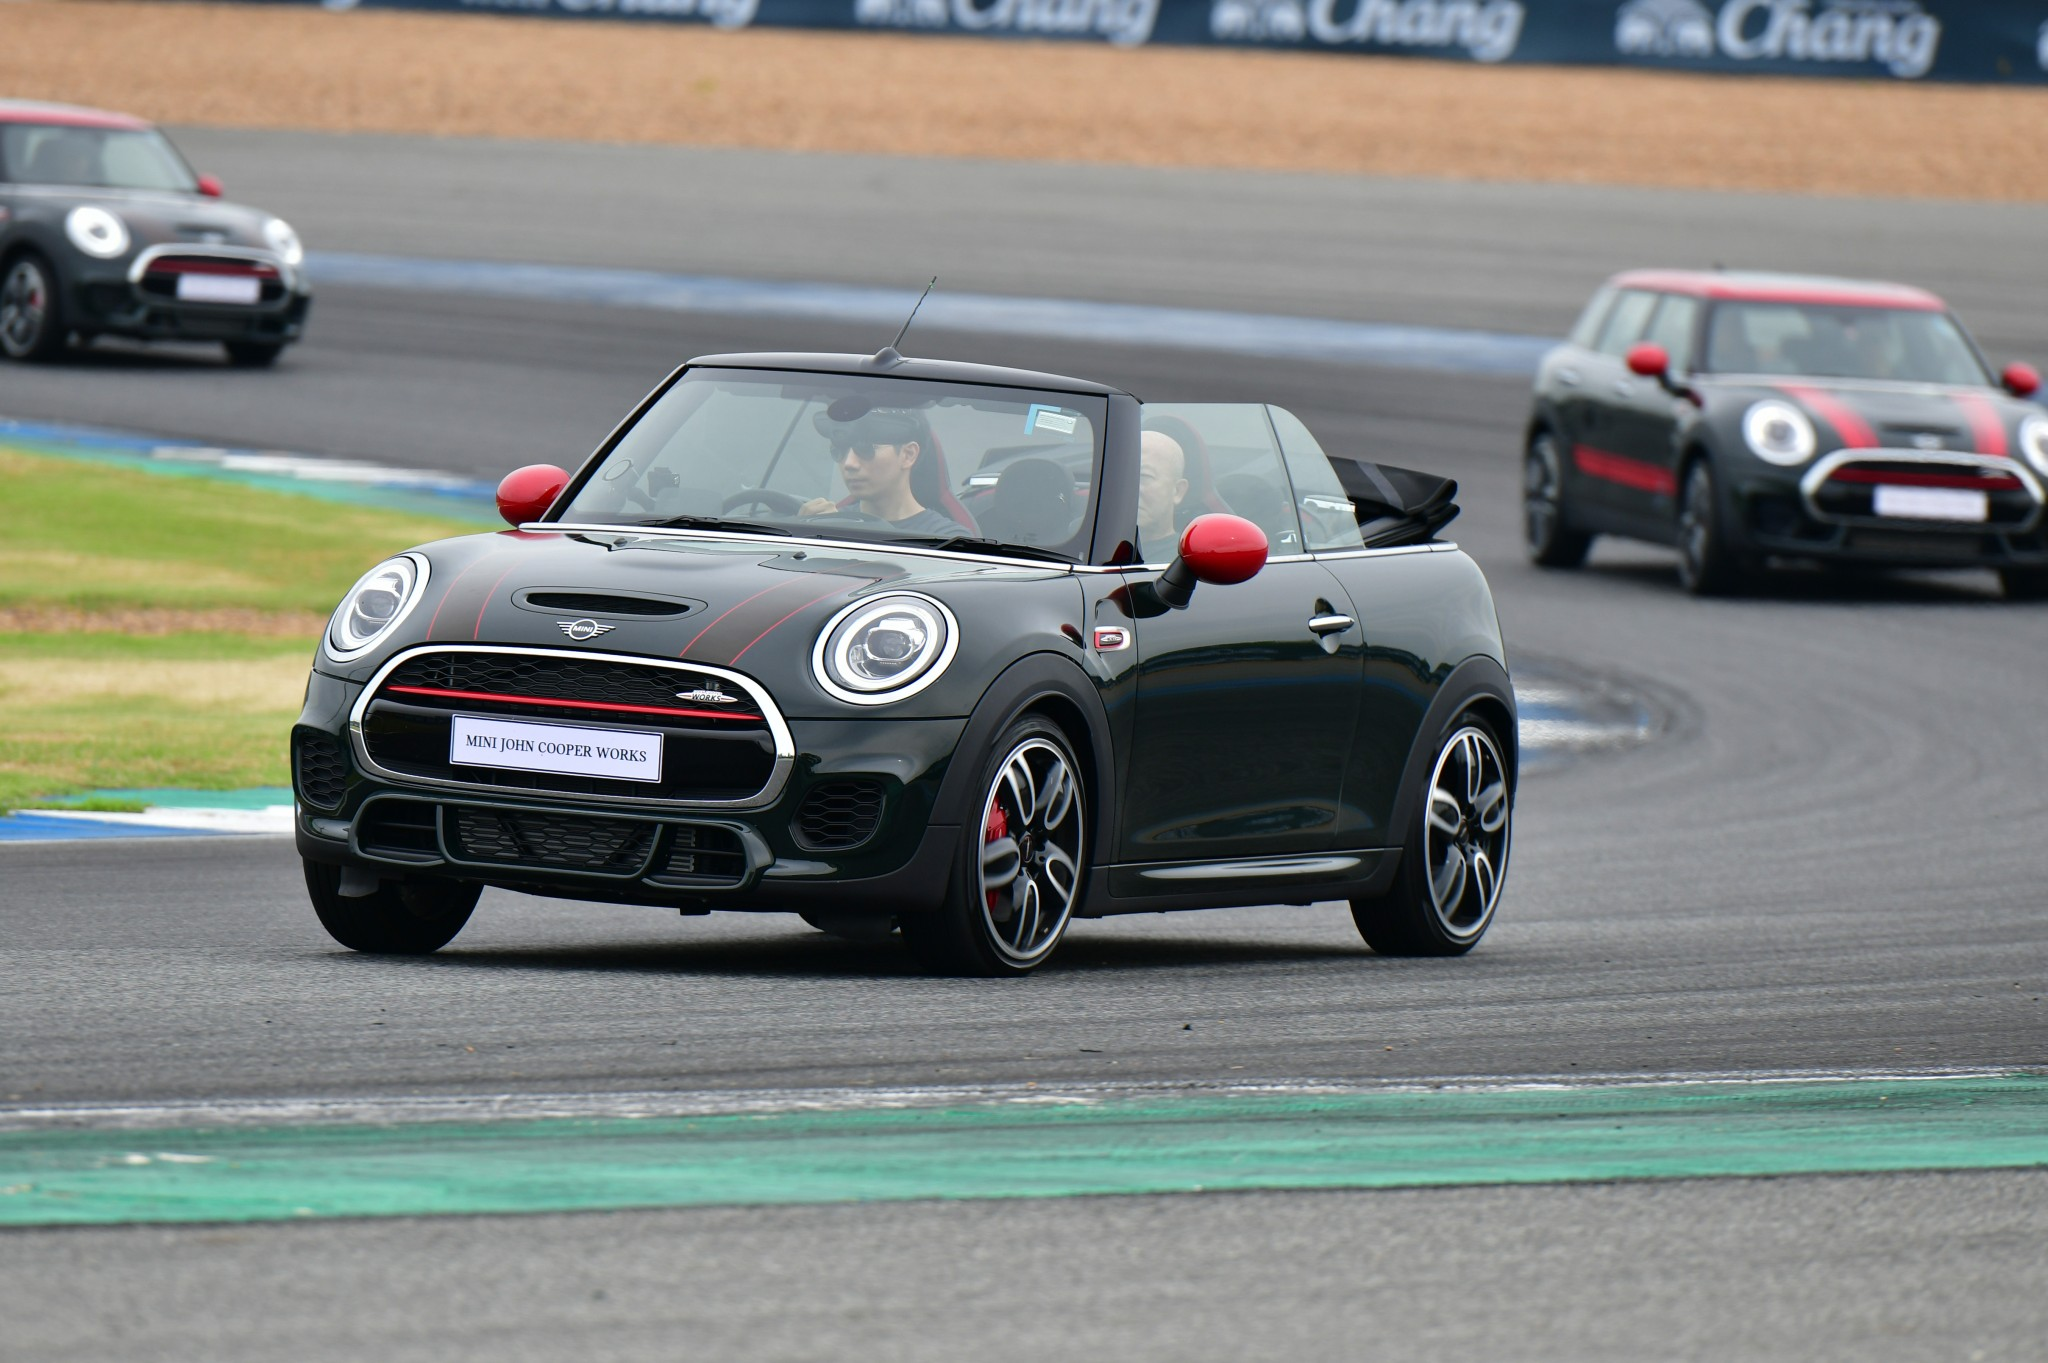 mini jcw event day-1091